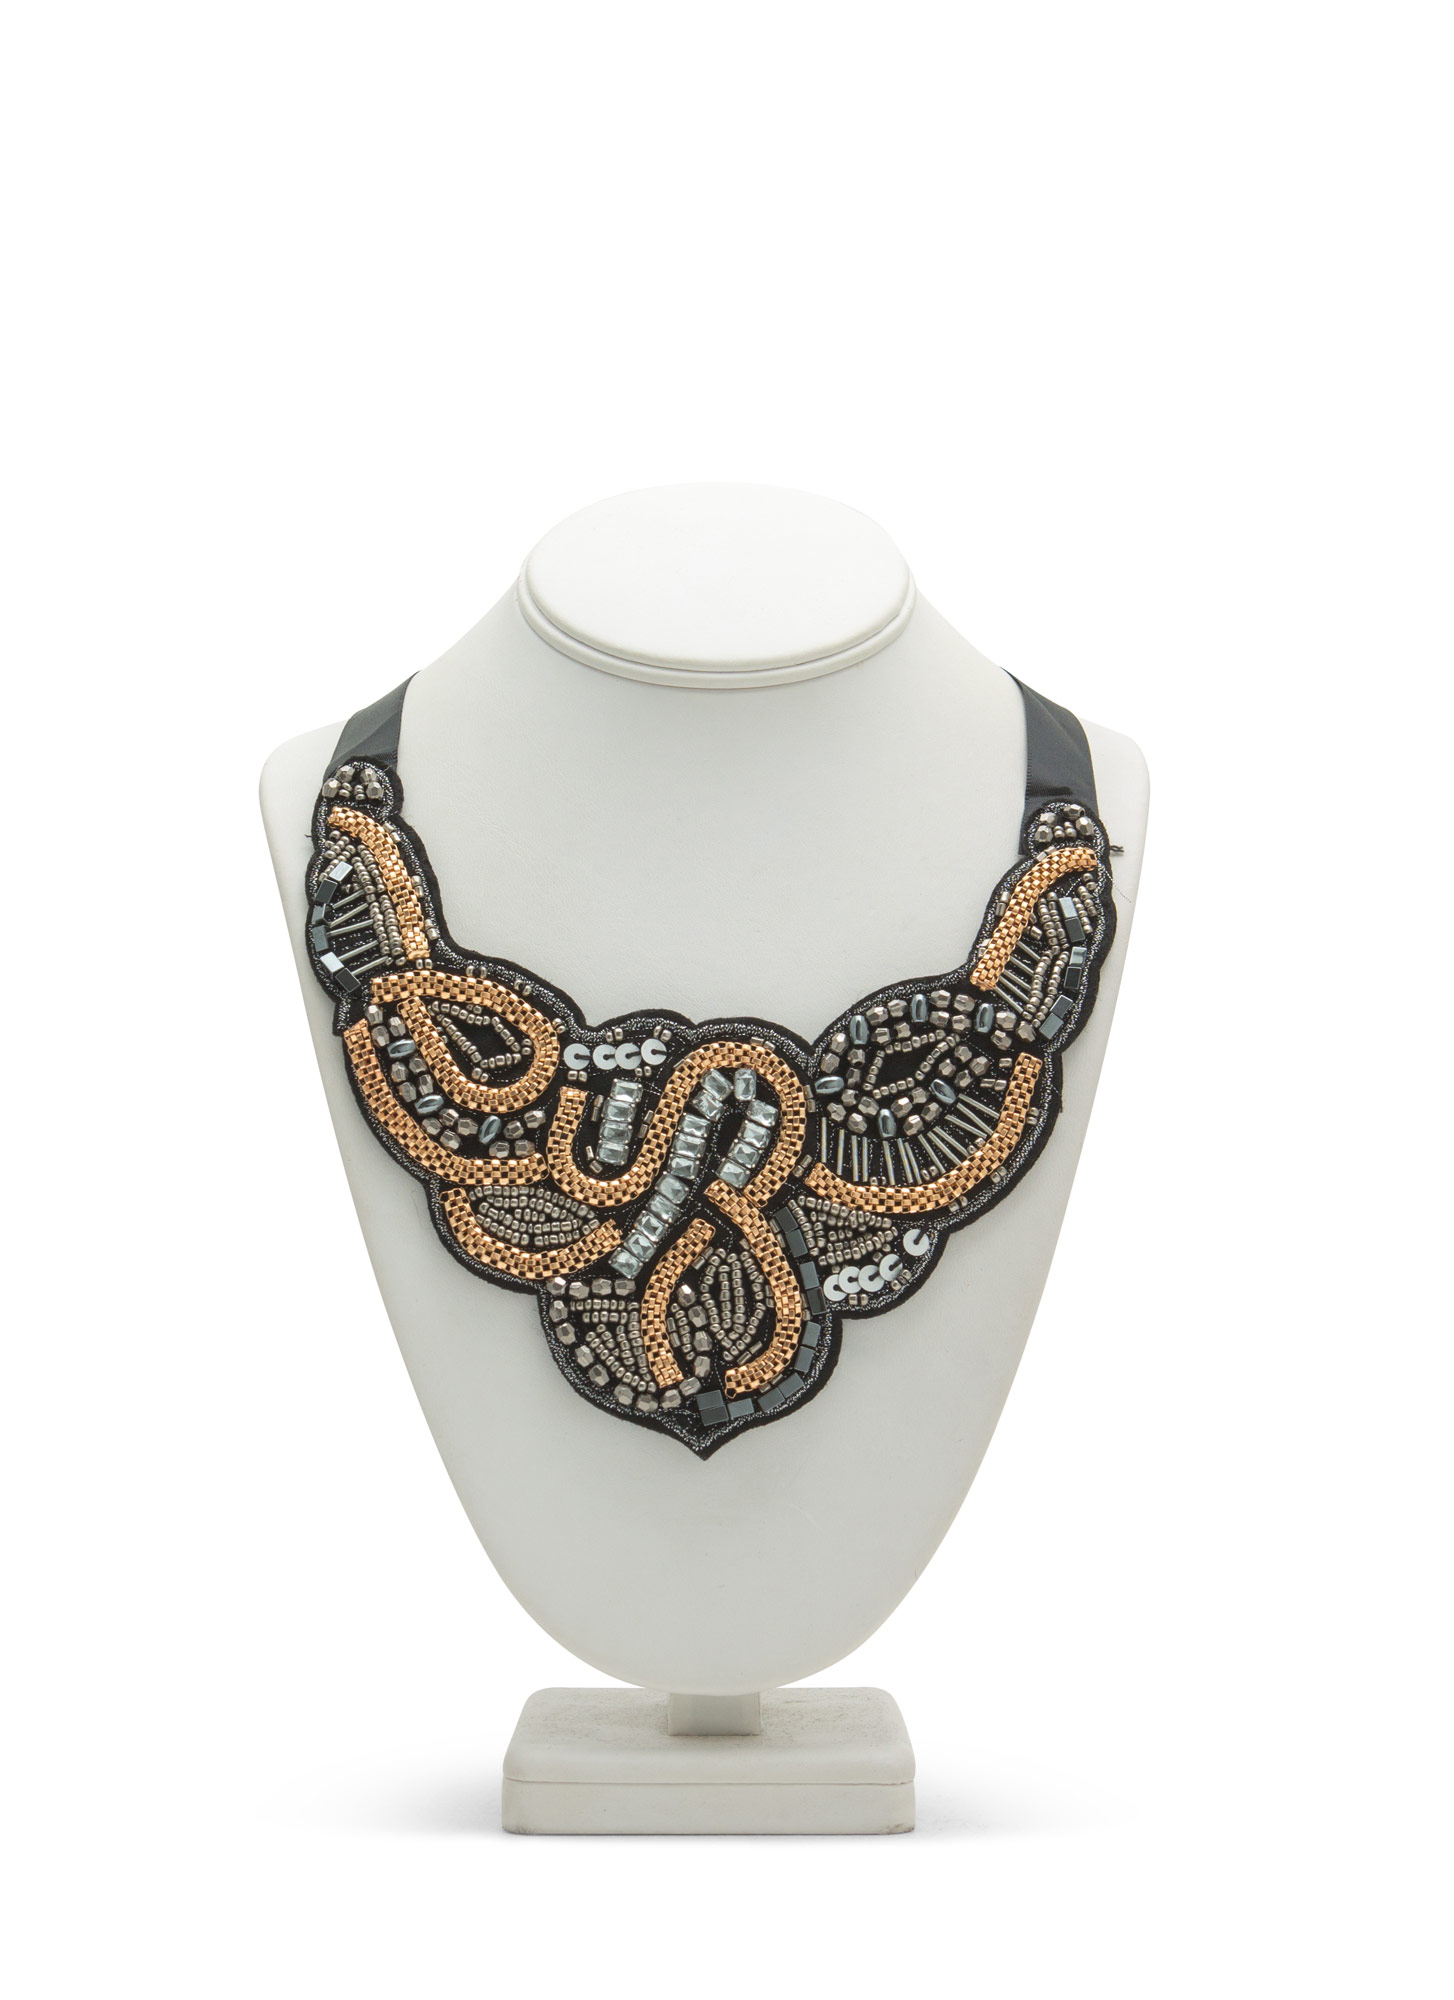 Mixed Metallic Beads 'N Chains Necklace GOLDBLK